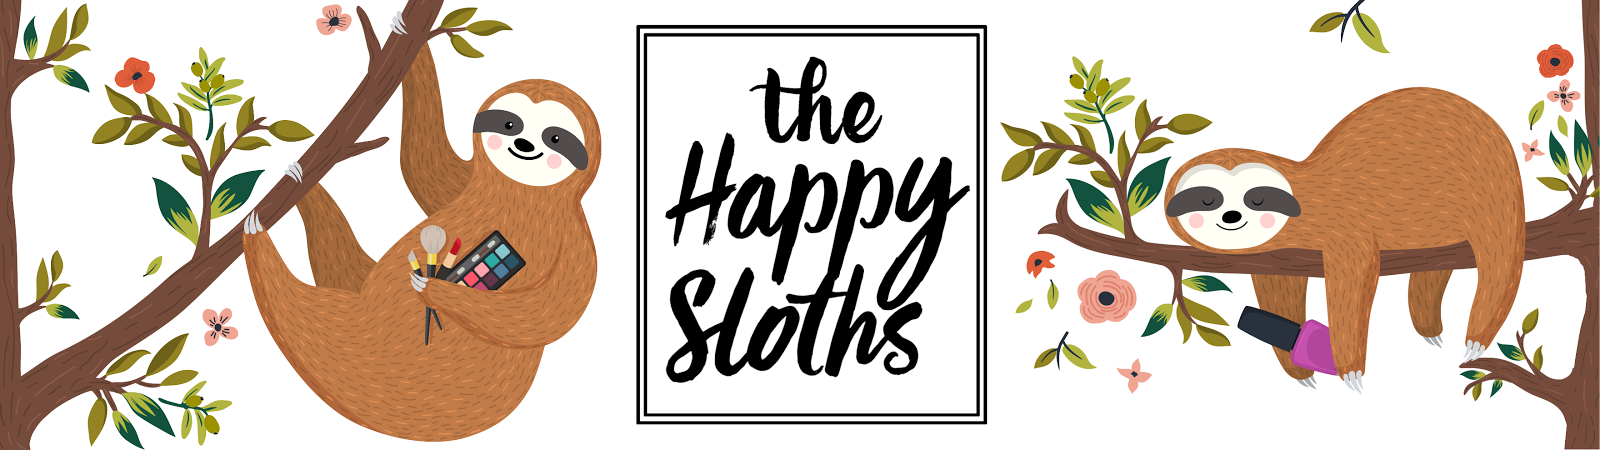 Beauty & Makeup Review Blog, Swatches, Beauty Product Reviews - The Happy Sloths